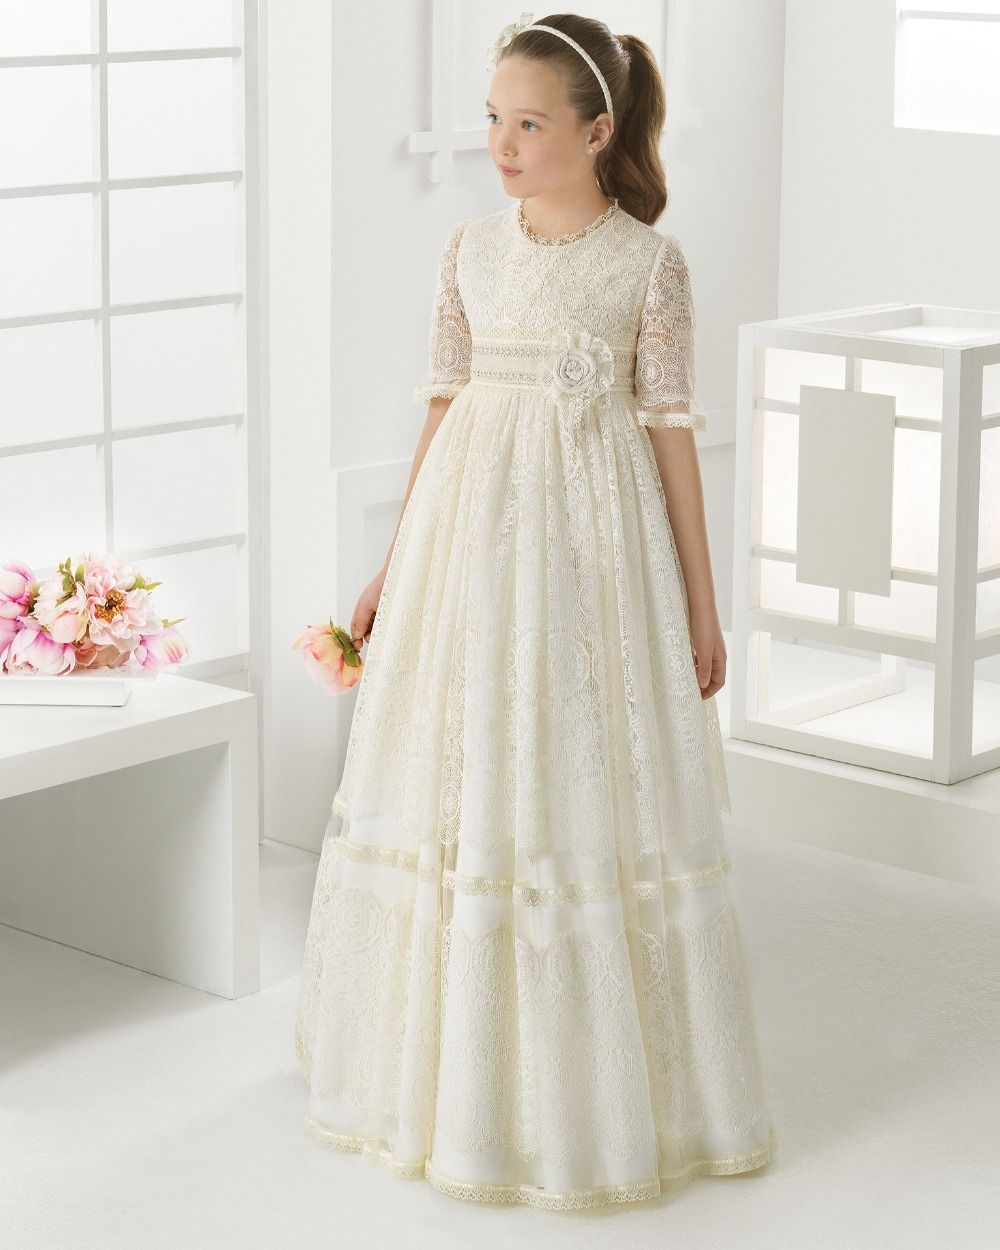 2016 First Communion Dresses for Girls Lace Empire Half Sleeve